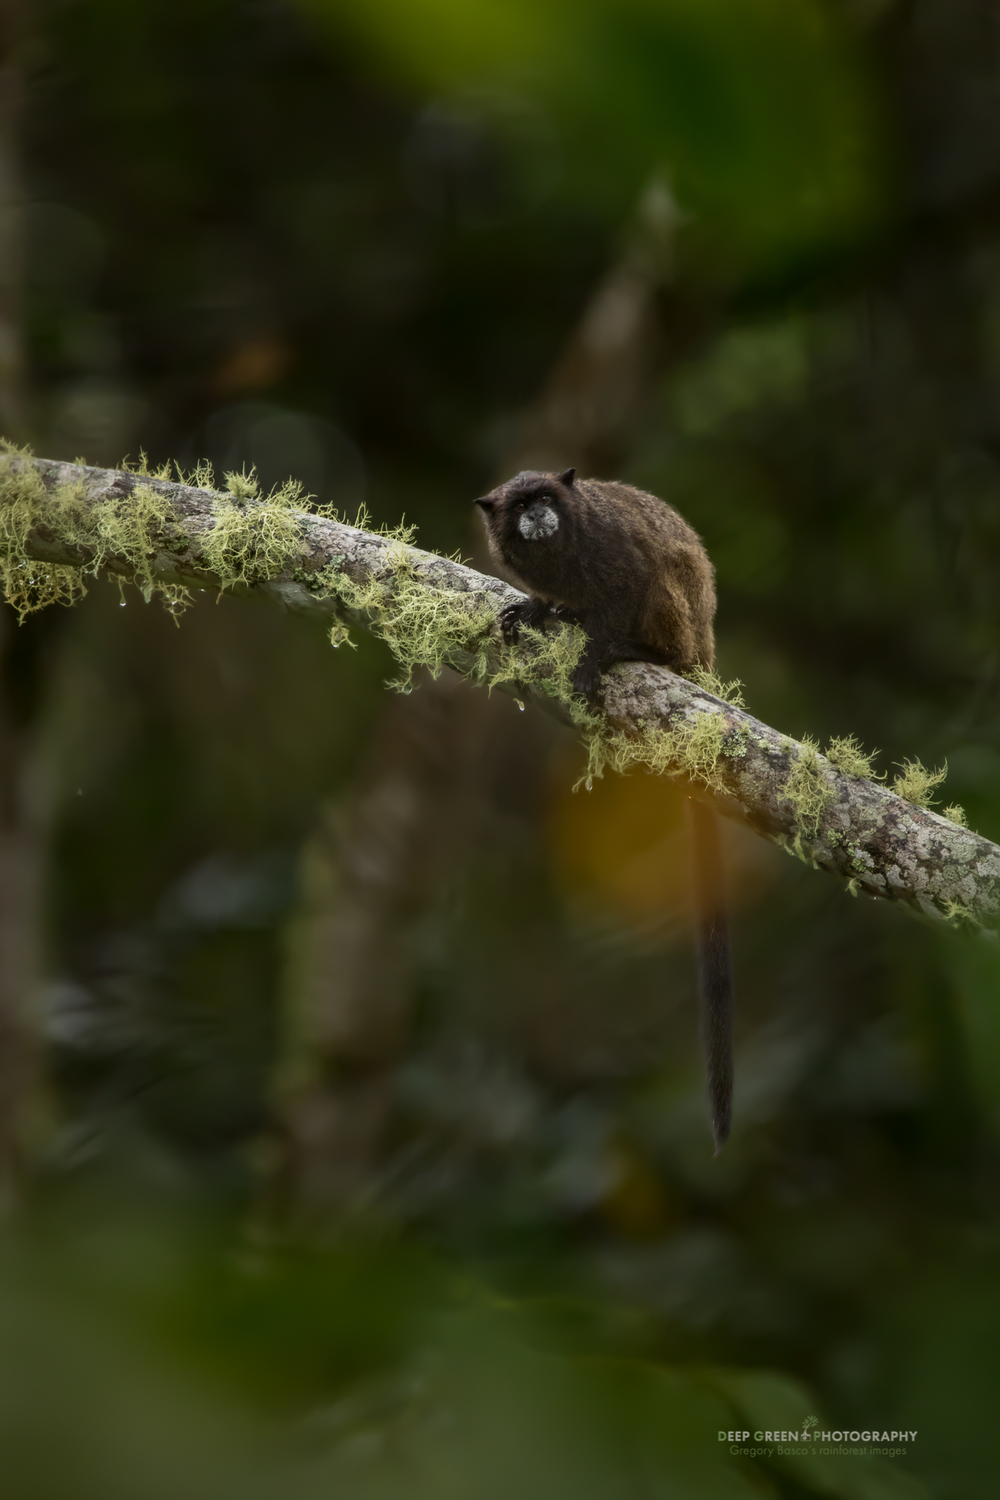 A dusky titi monkey in the rainforest near Ecuador's Sumaco volcano